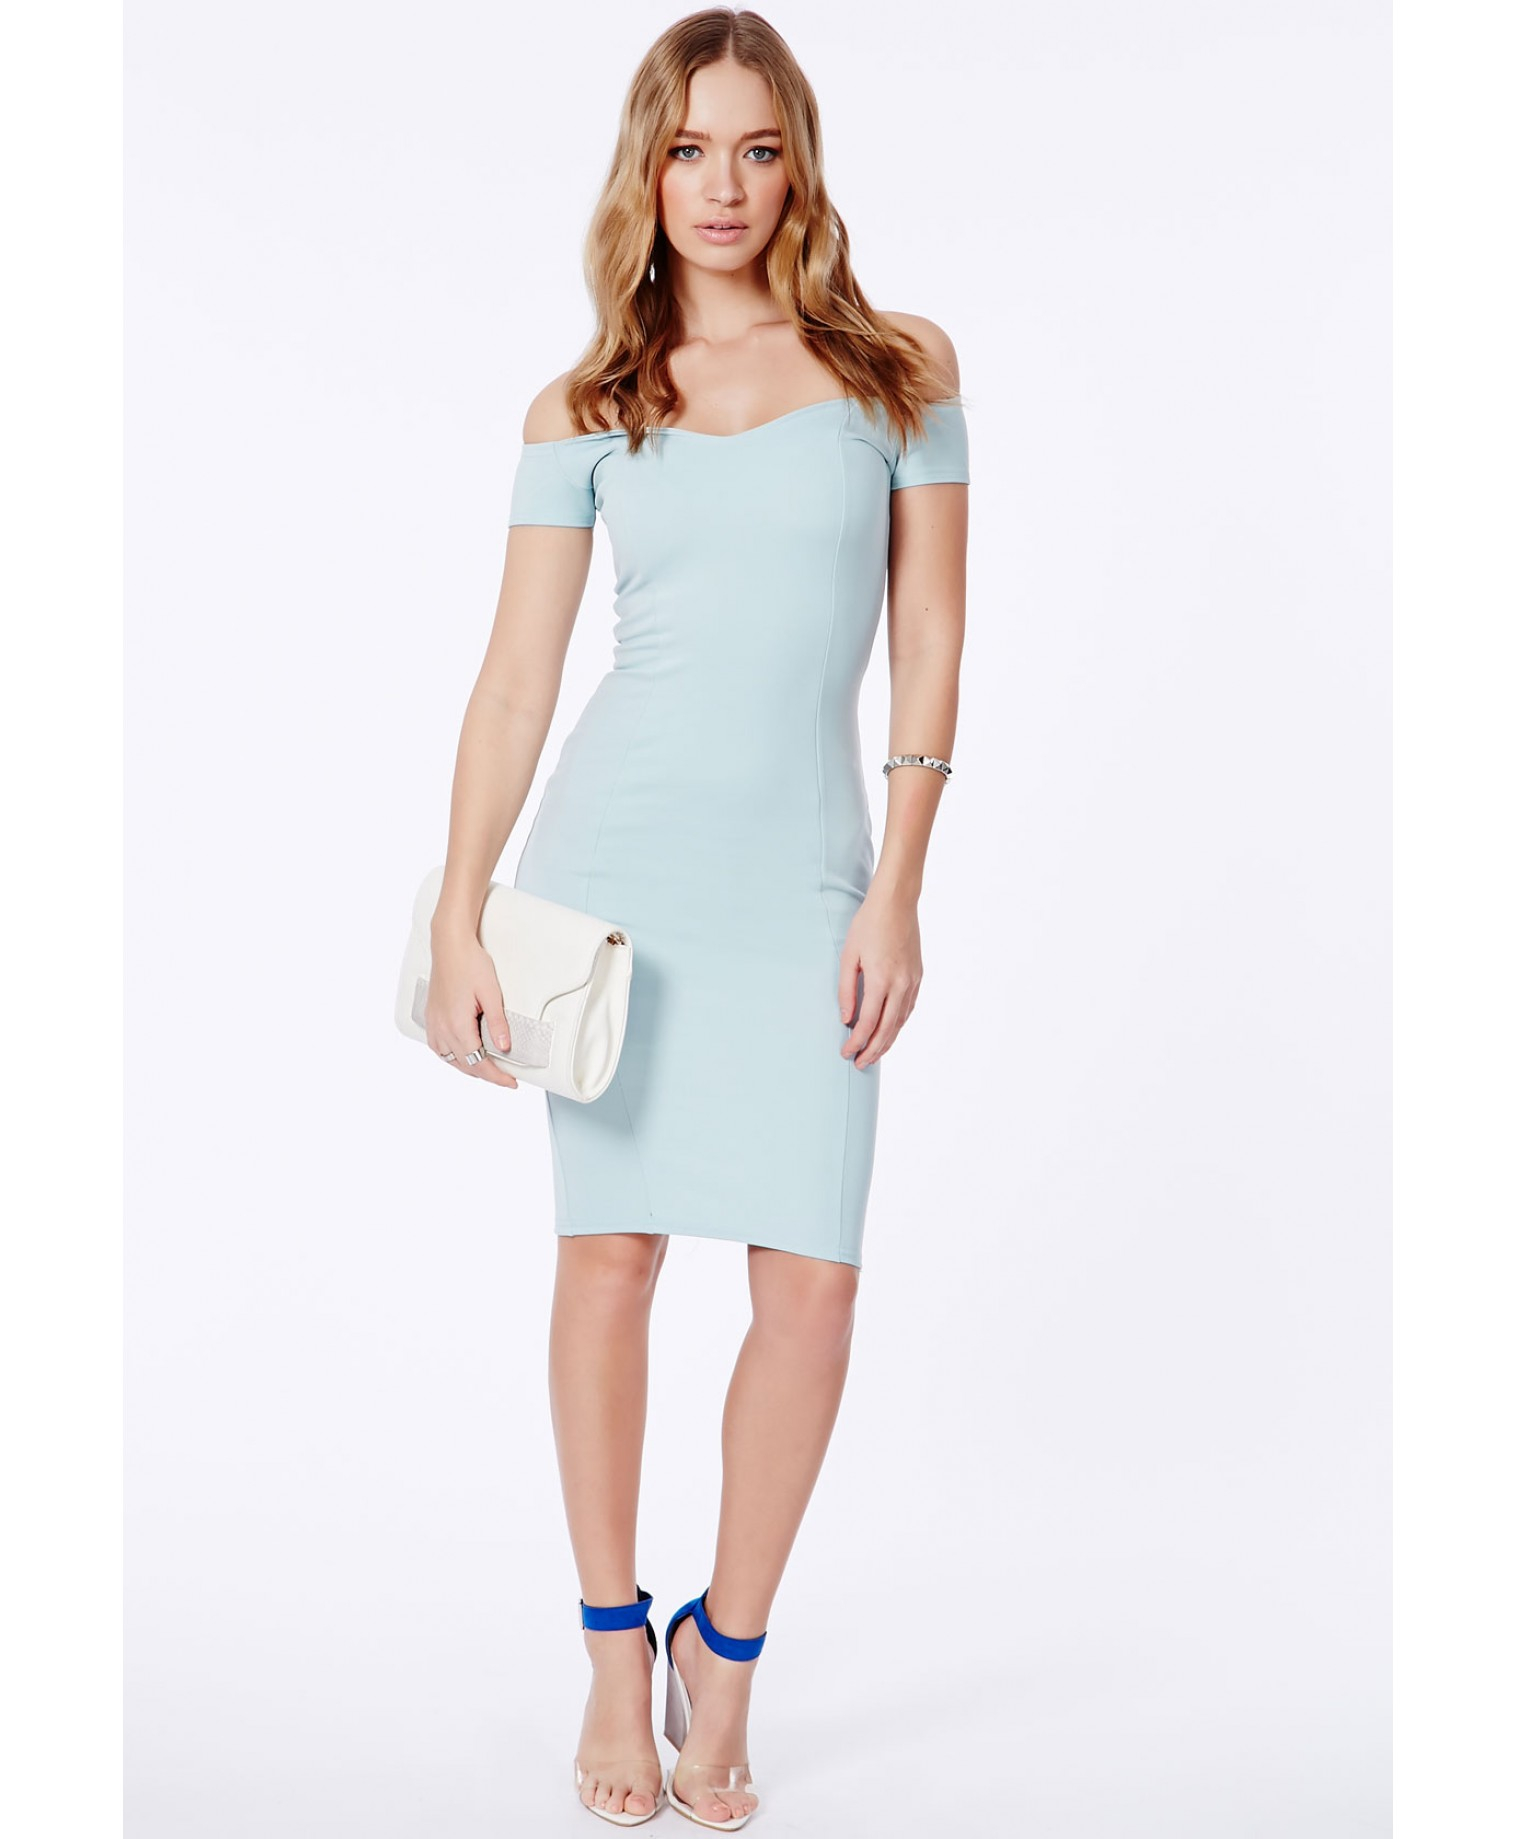 Find great deals on eBay for blue midi dress. Shop with confidence.